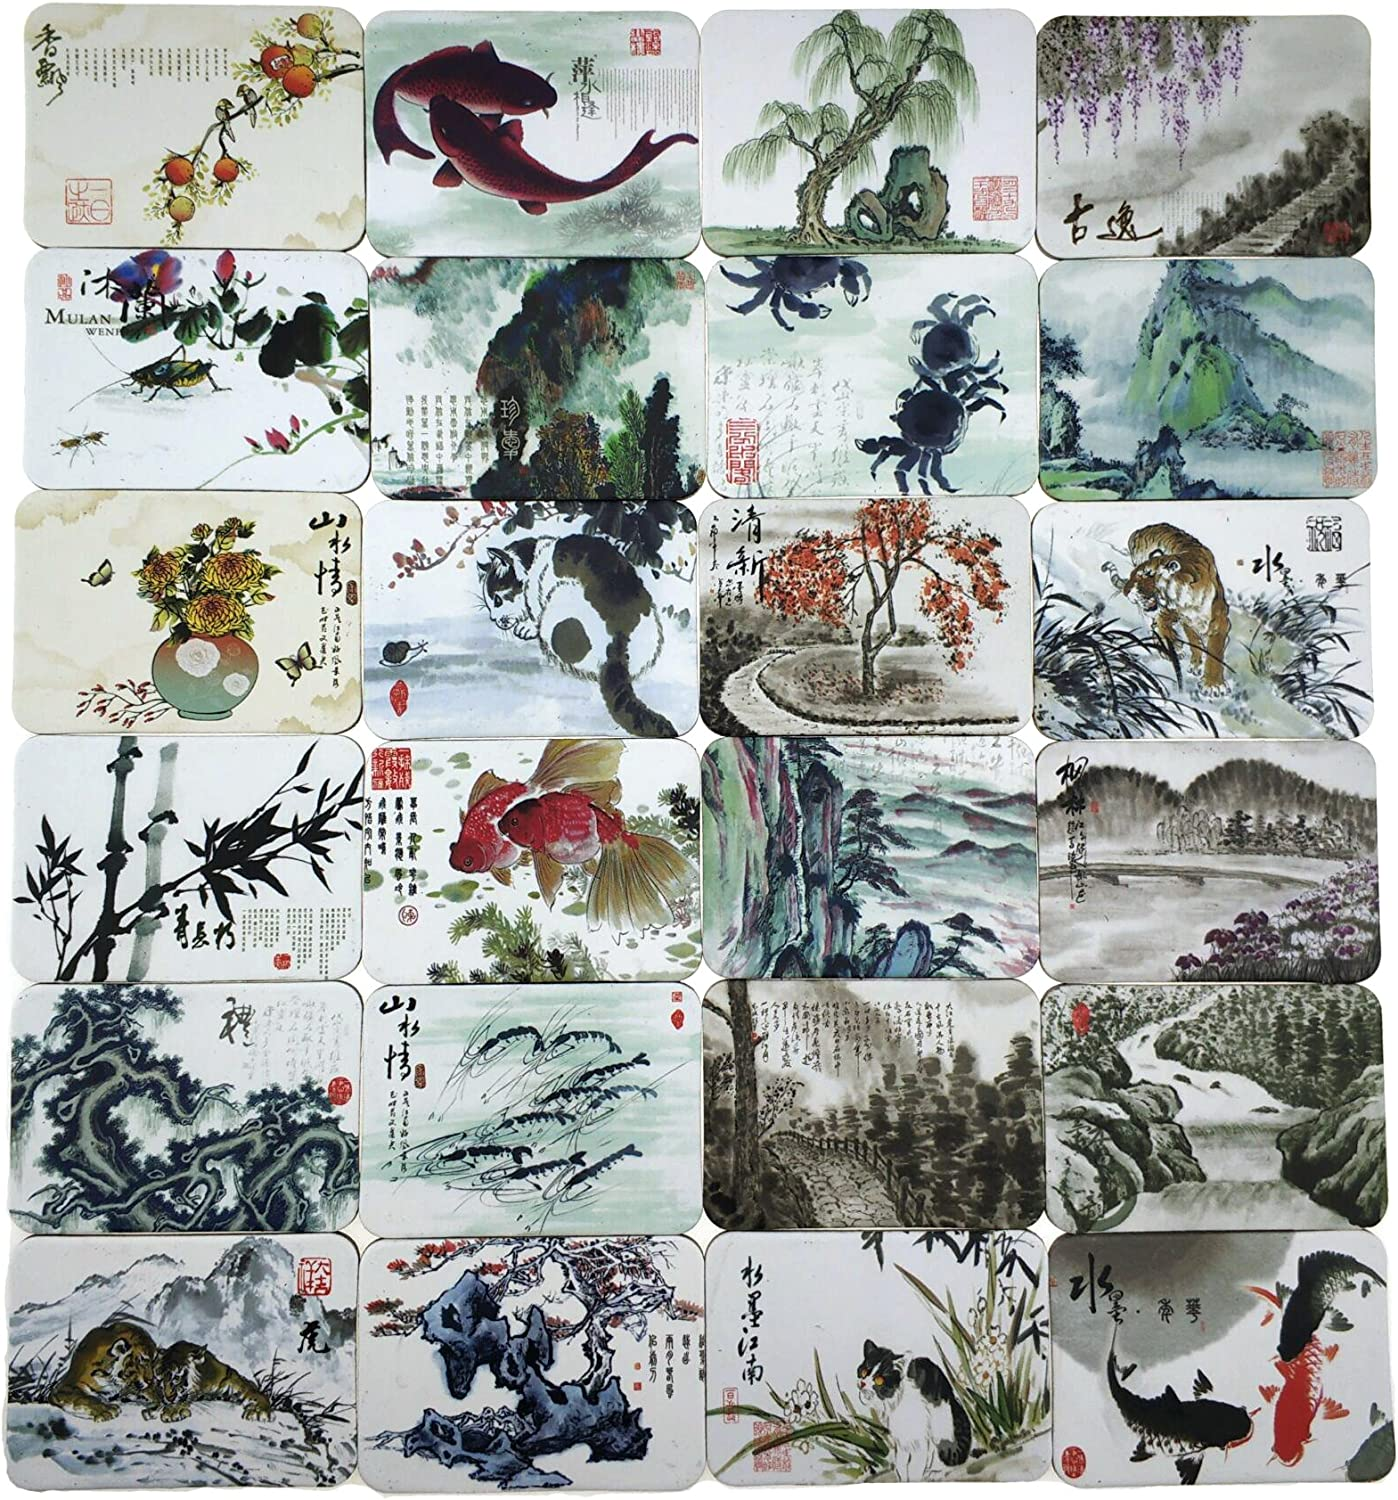 MISWEE 24-pcs Magnetic Fridge Magnets Refrigerator Sticker Scenery Home Decoration Animal Classic cars Accessories Magnetic Paste Arts/Crafts (Chinese ink painting)